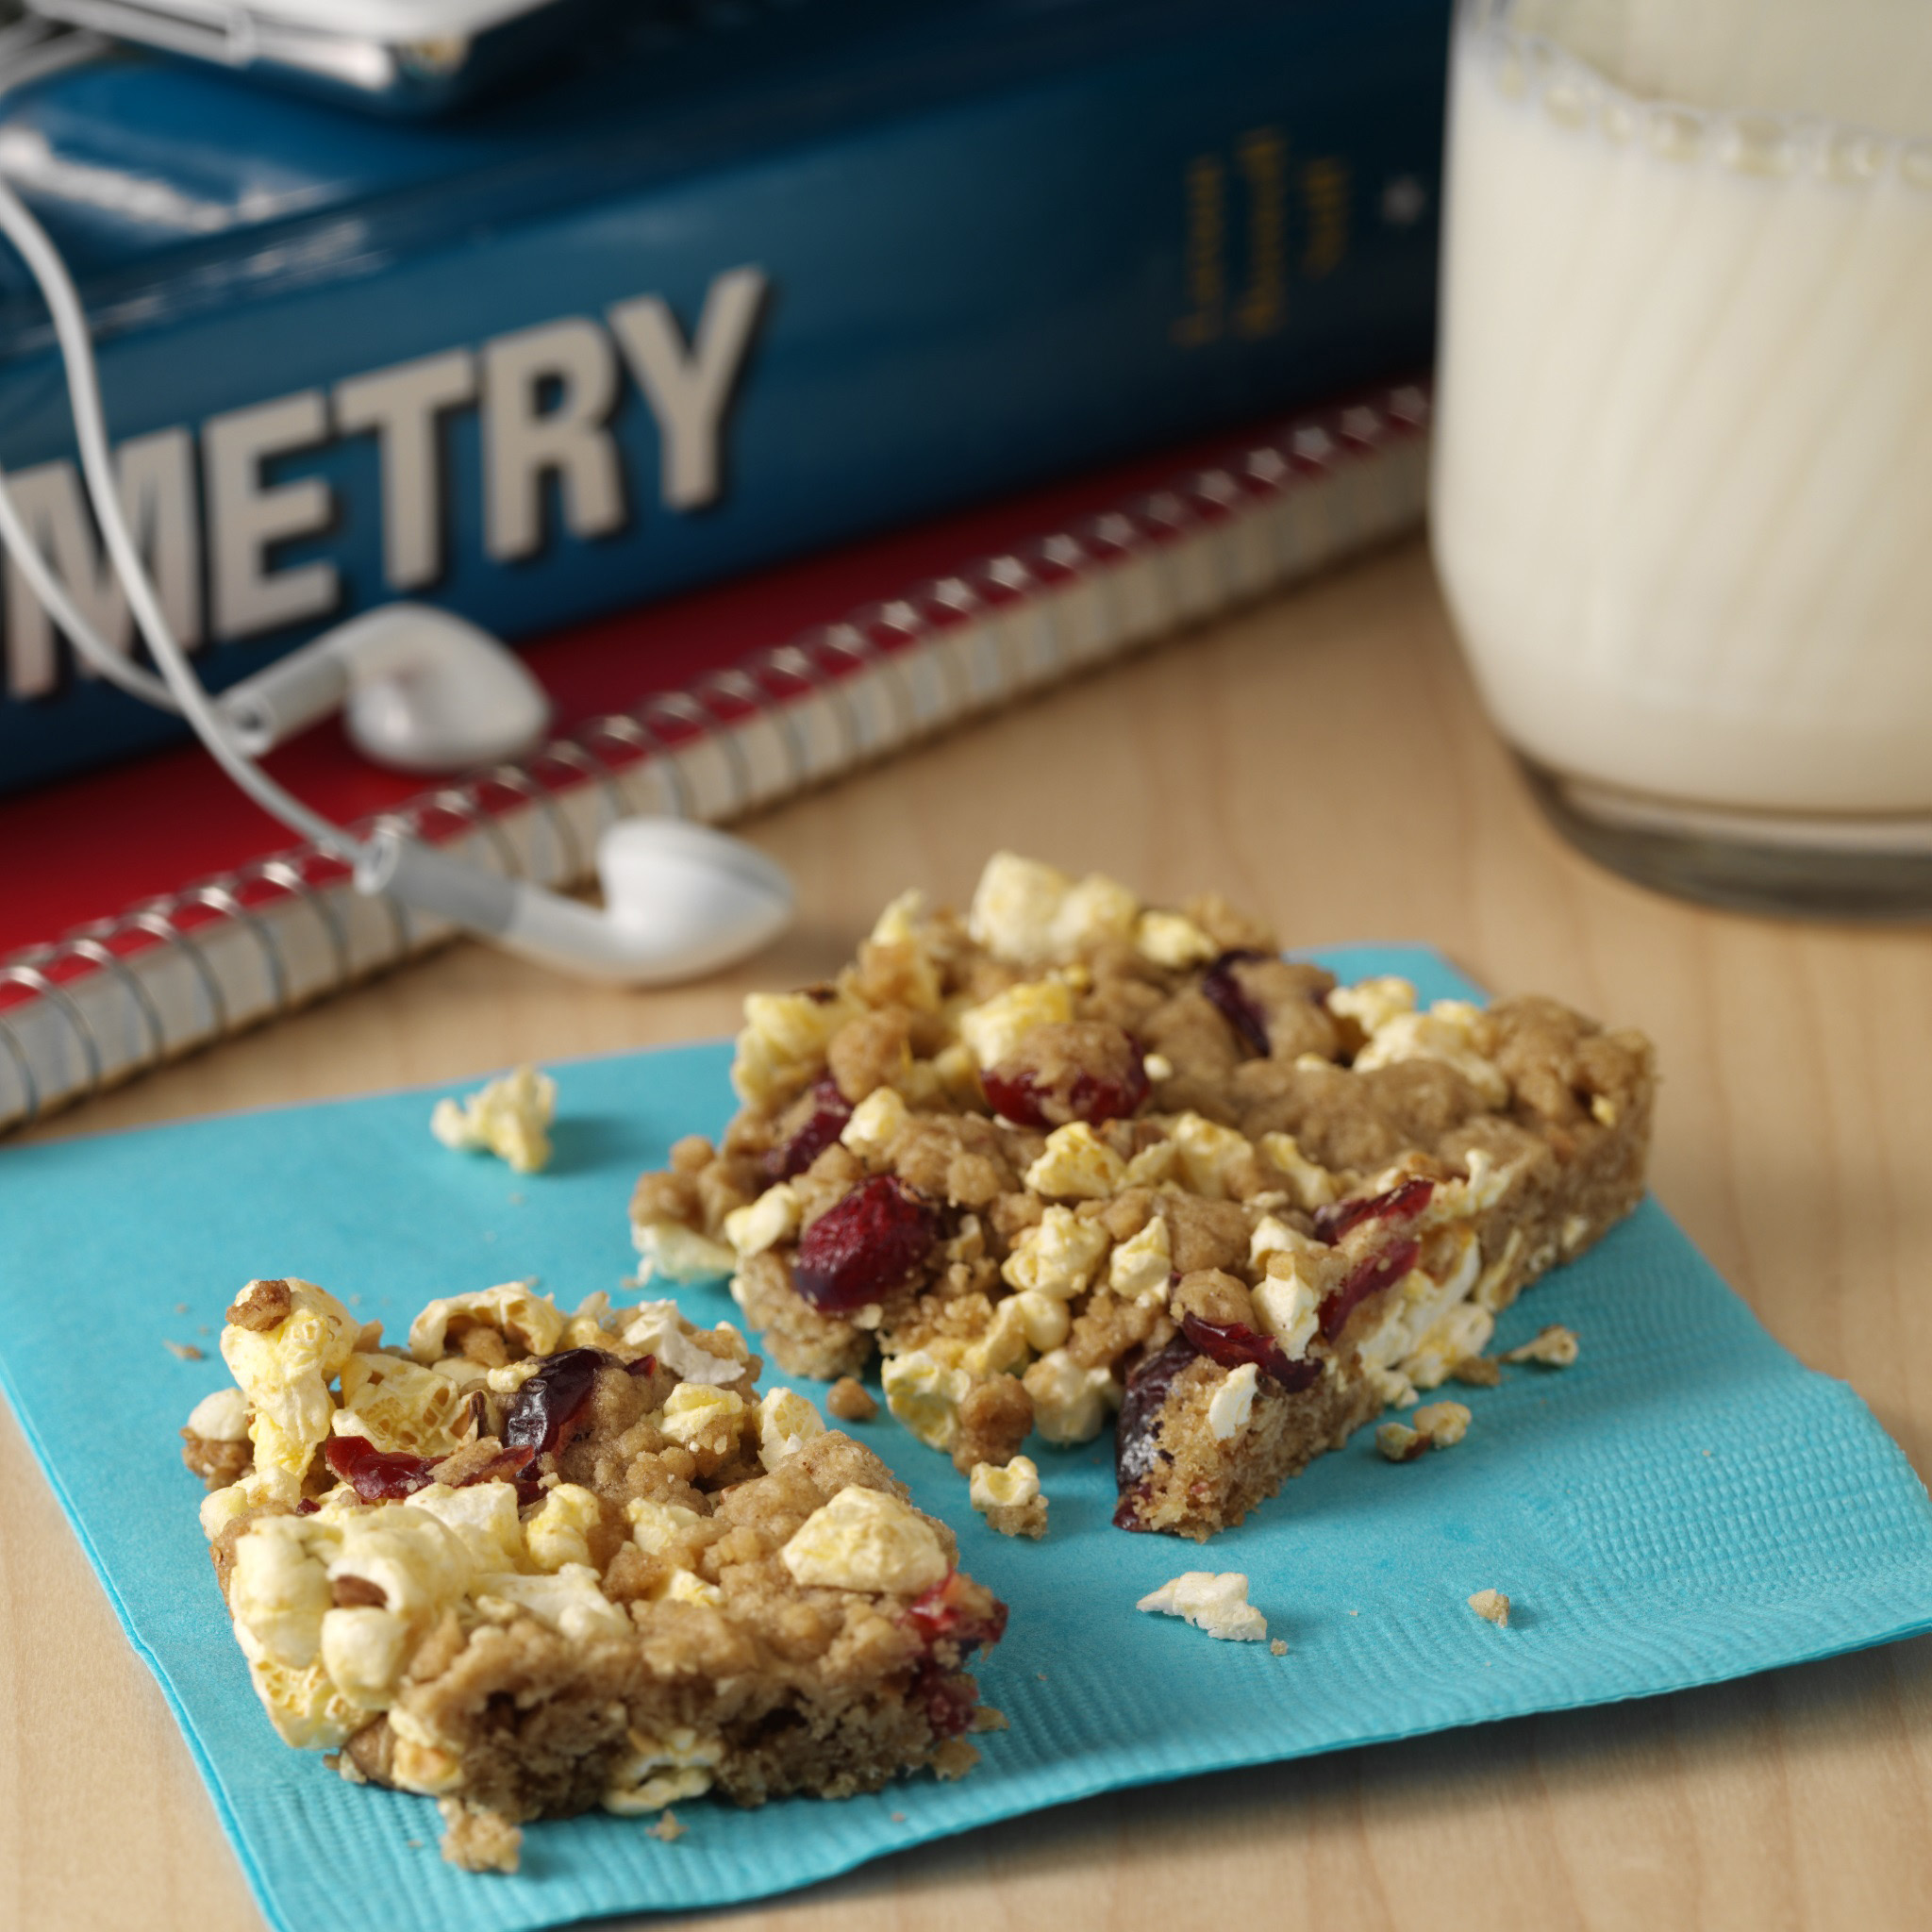 With microwave popcorn, oats, cinnamon, brown sugar and dried cranberries, Orville Redenbacher's Power Crunch Bars can be enjoyed at home or on the go.